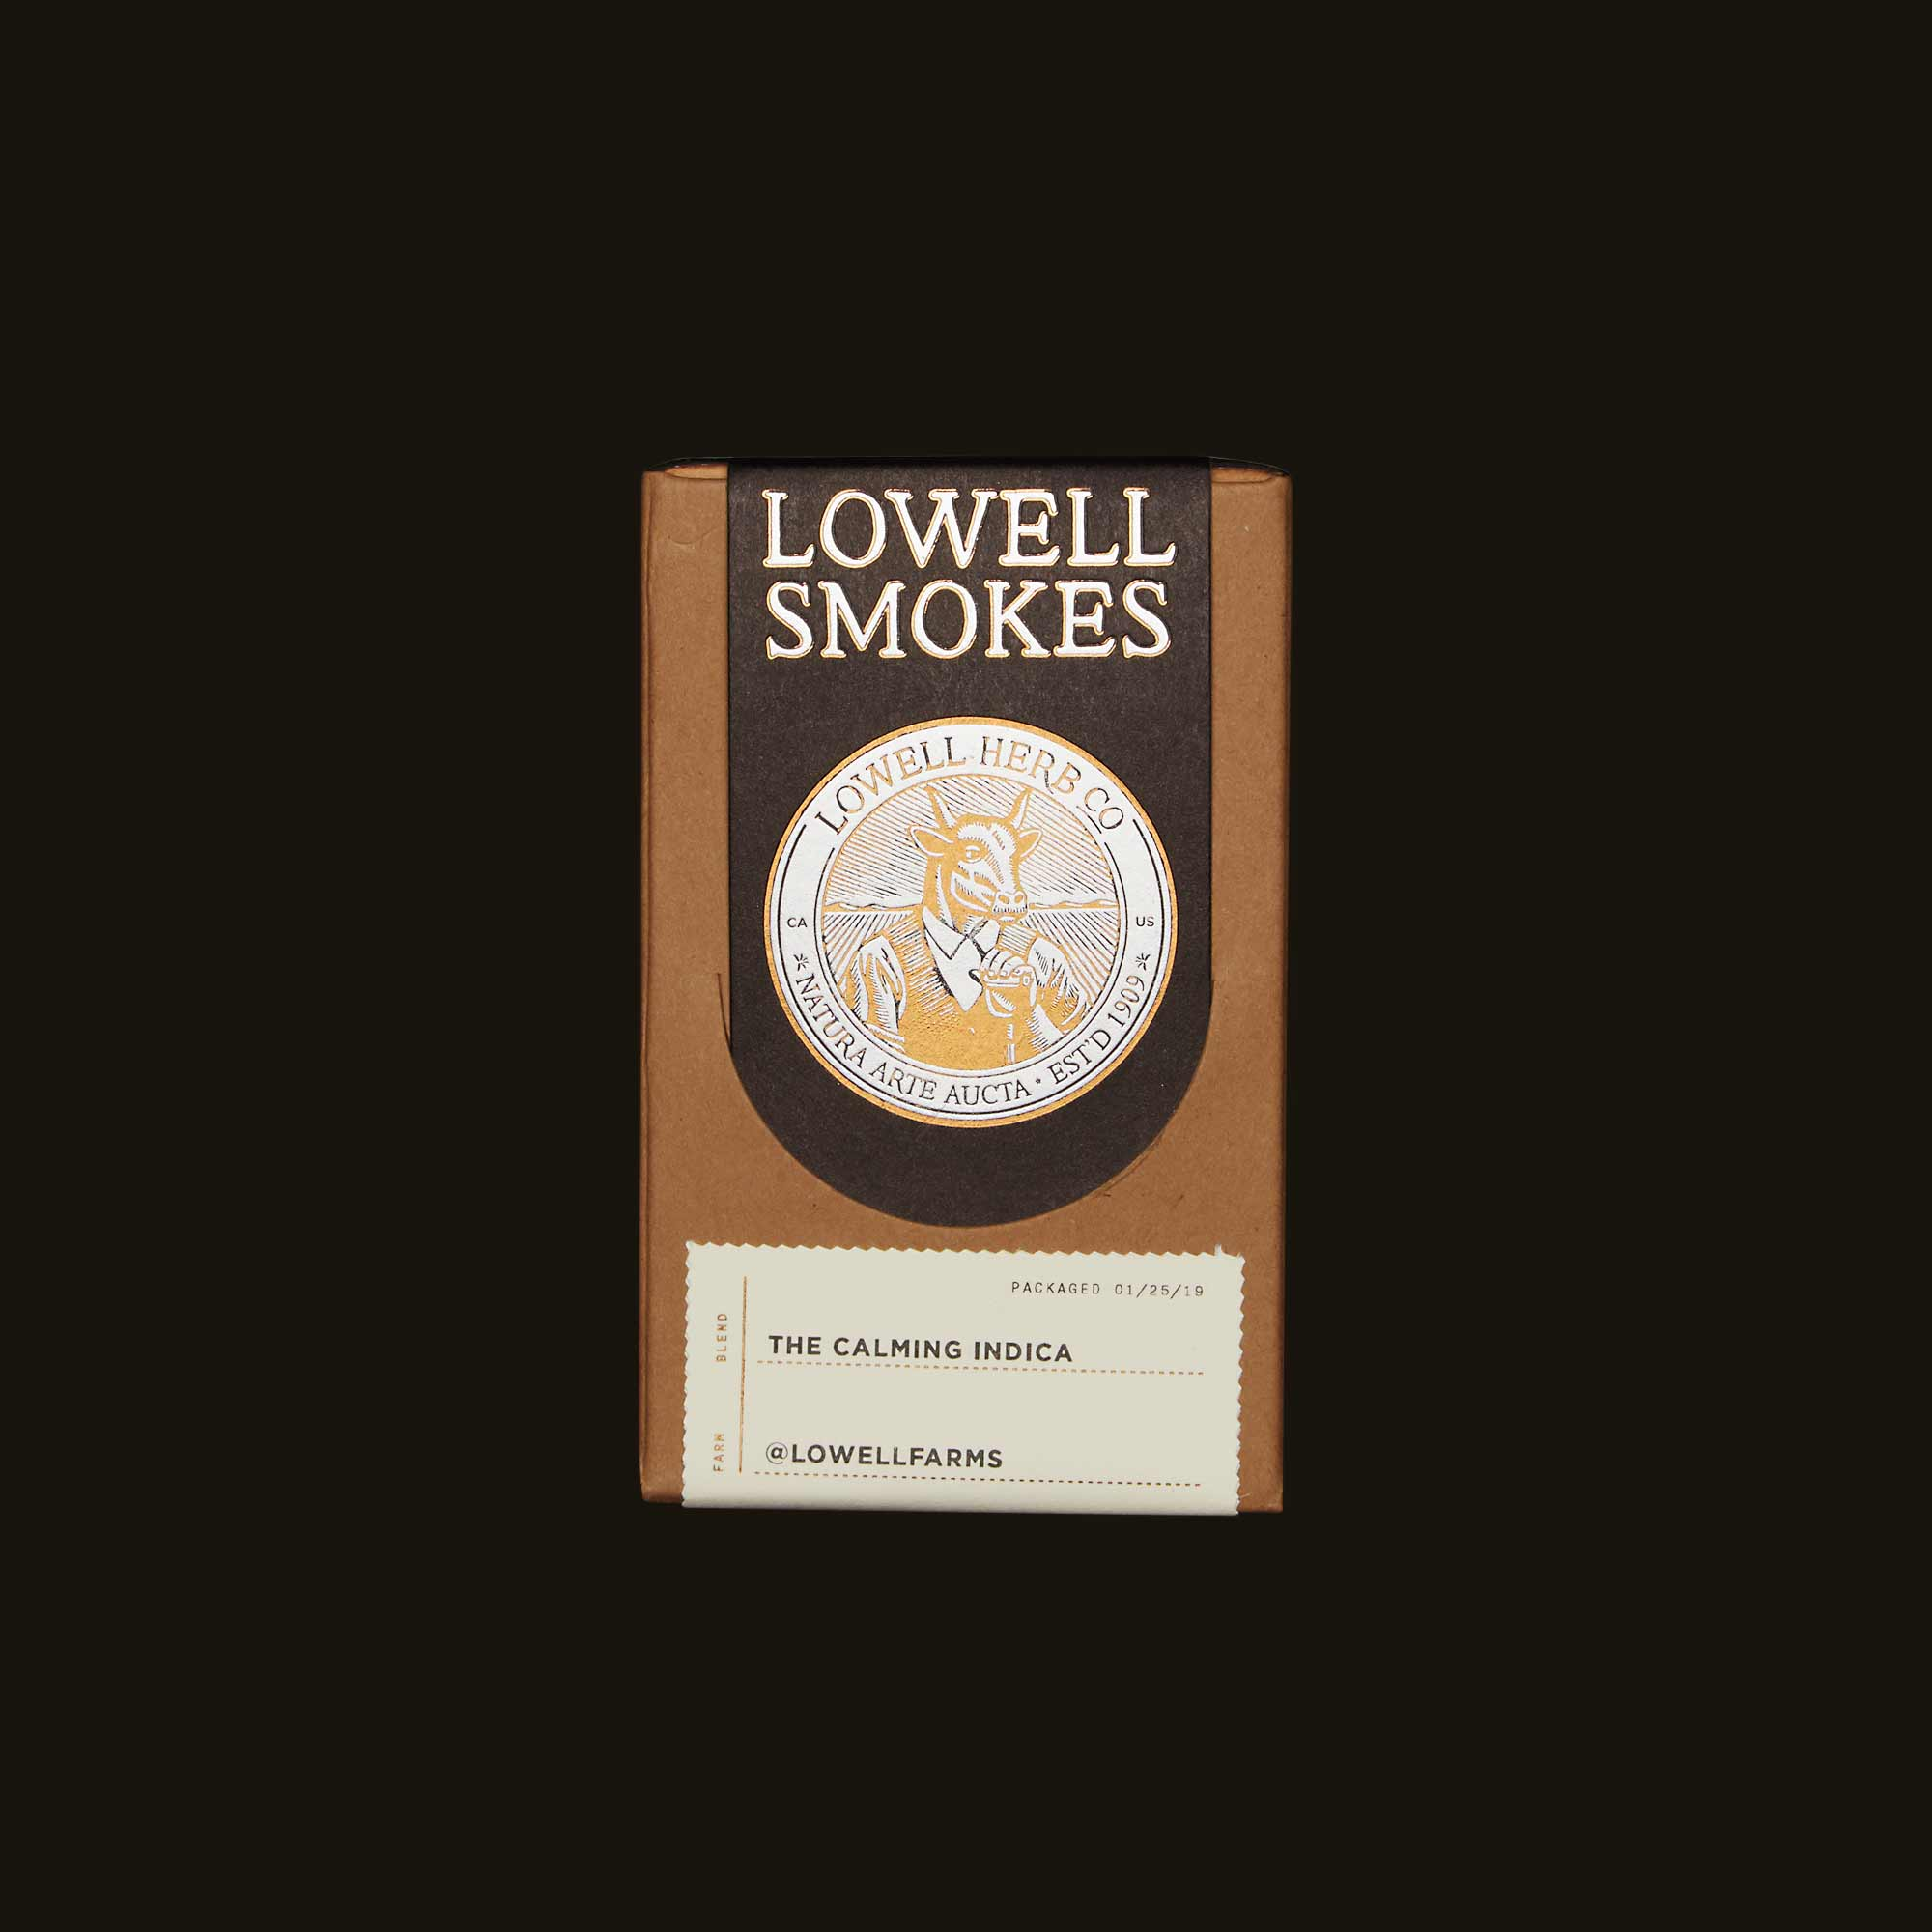 The Calming Indica Smokes - Seven 0.5g joints, Fourteen 0.5g joints